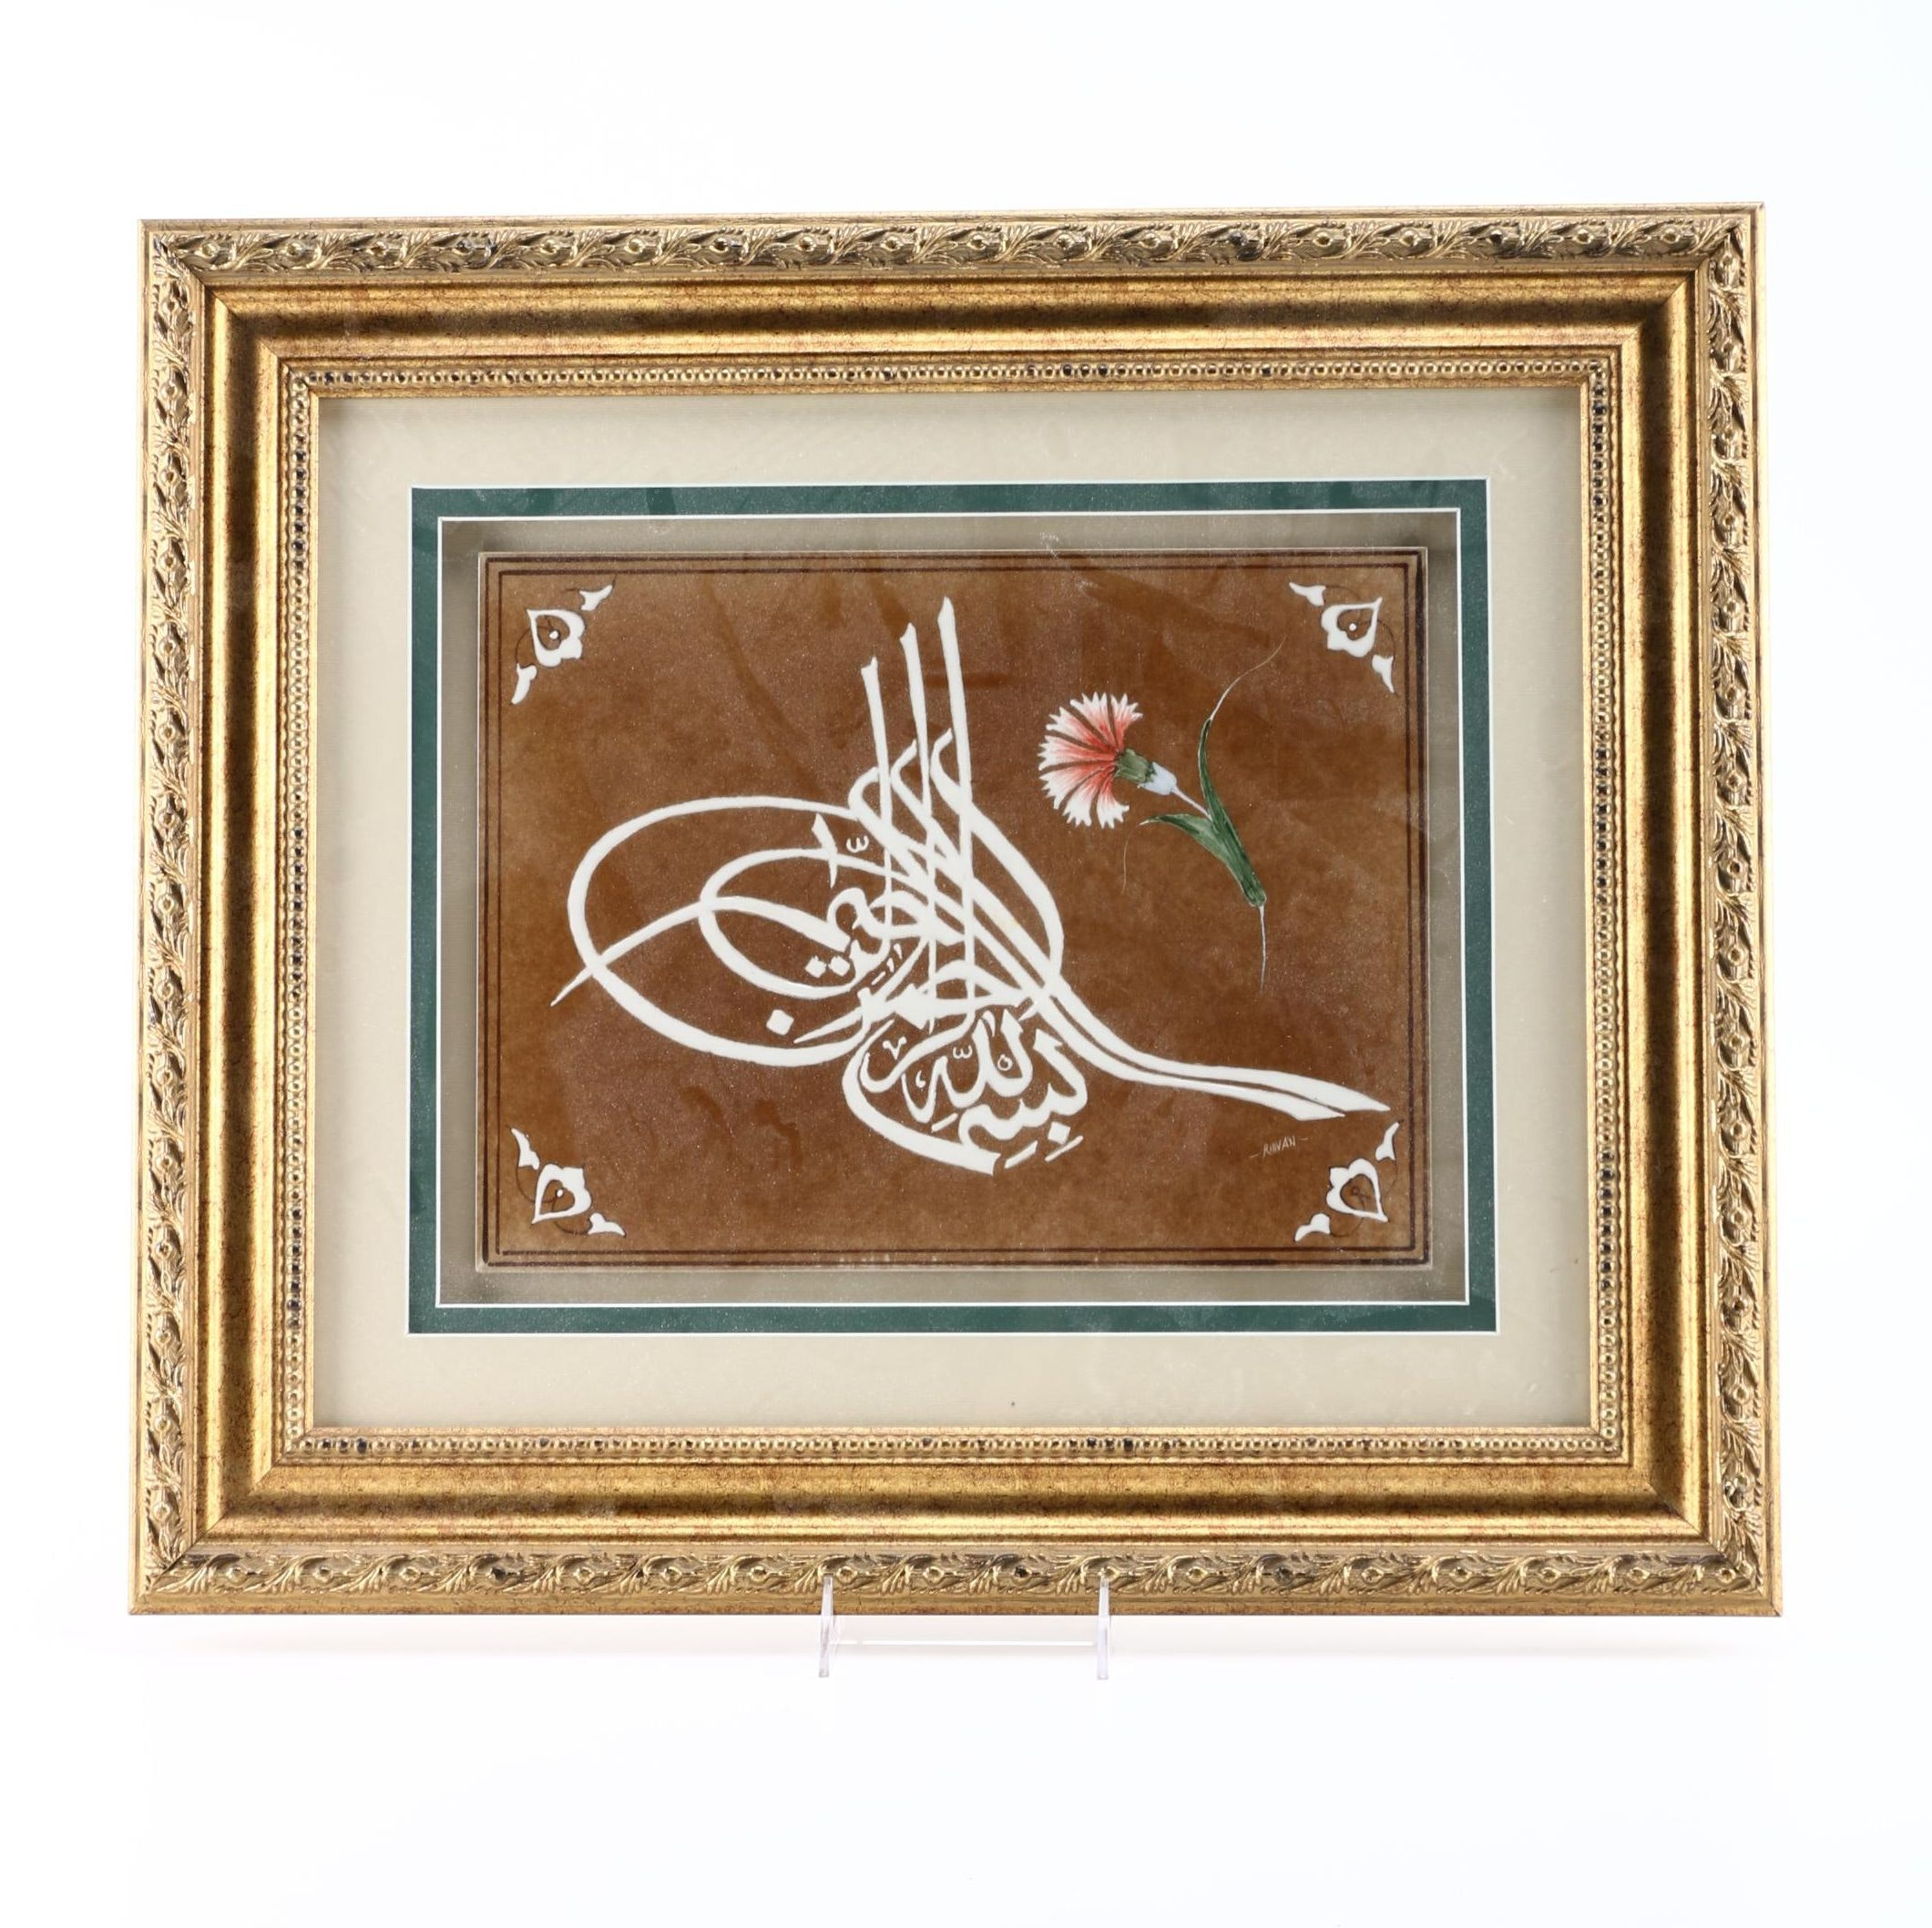 Ridvan Hand-Painted Turkish Tile With Islamic Prayer